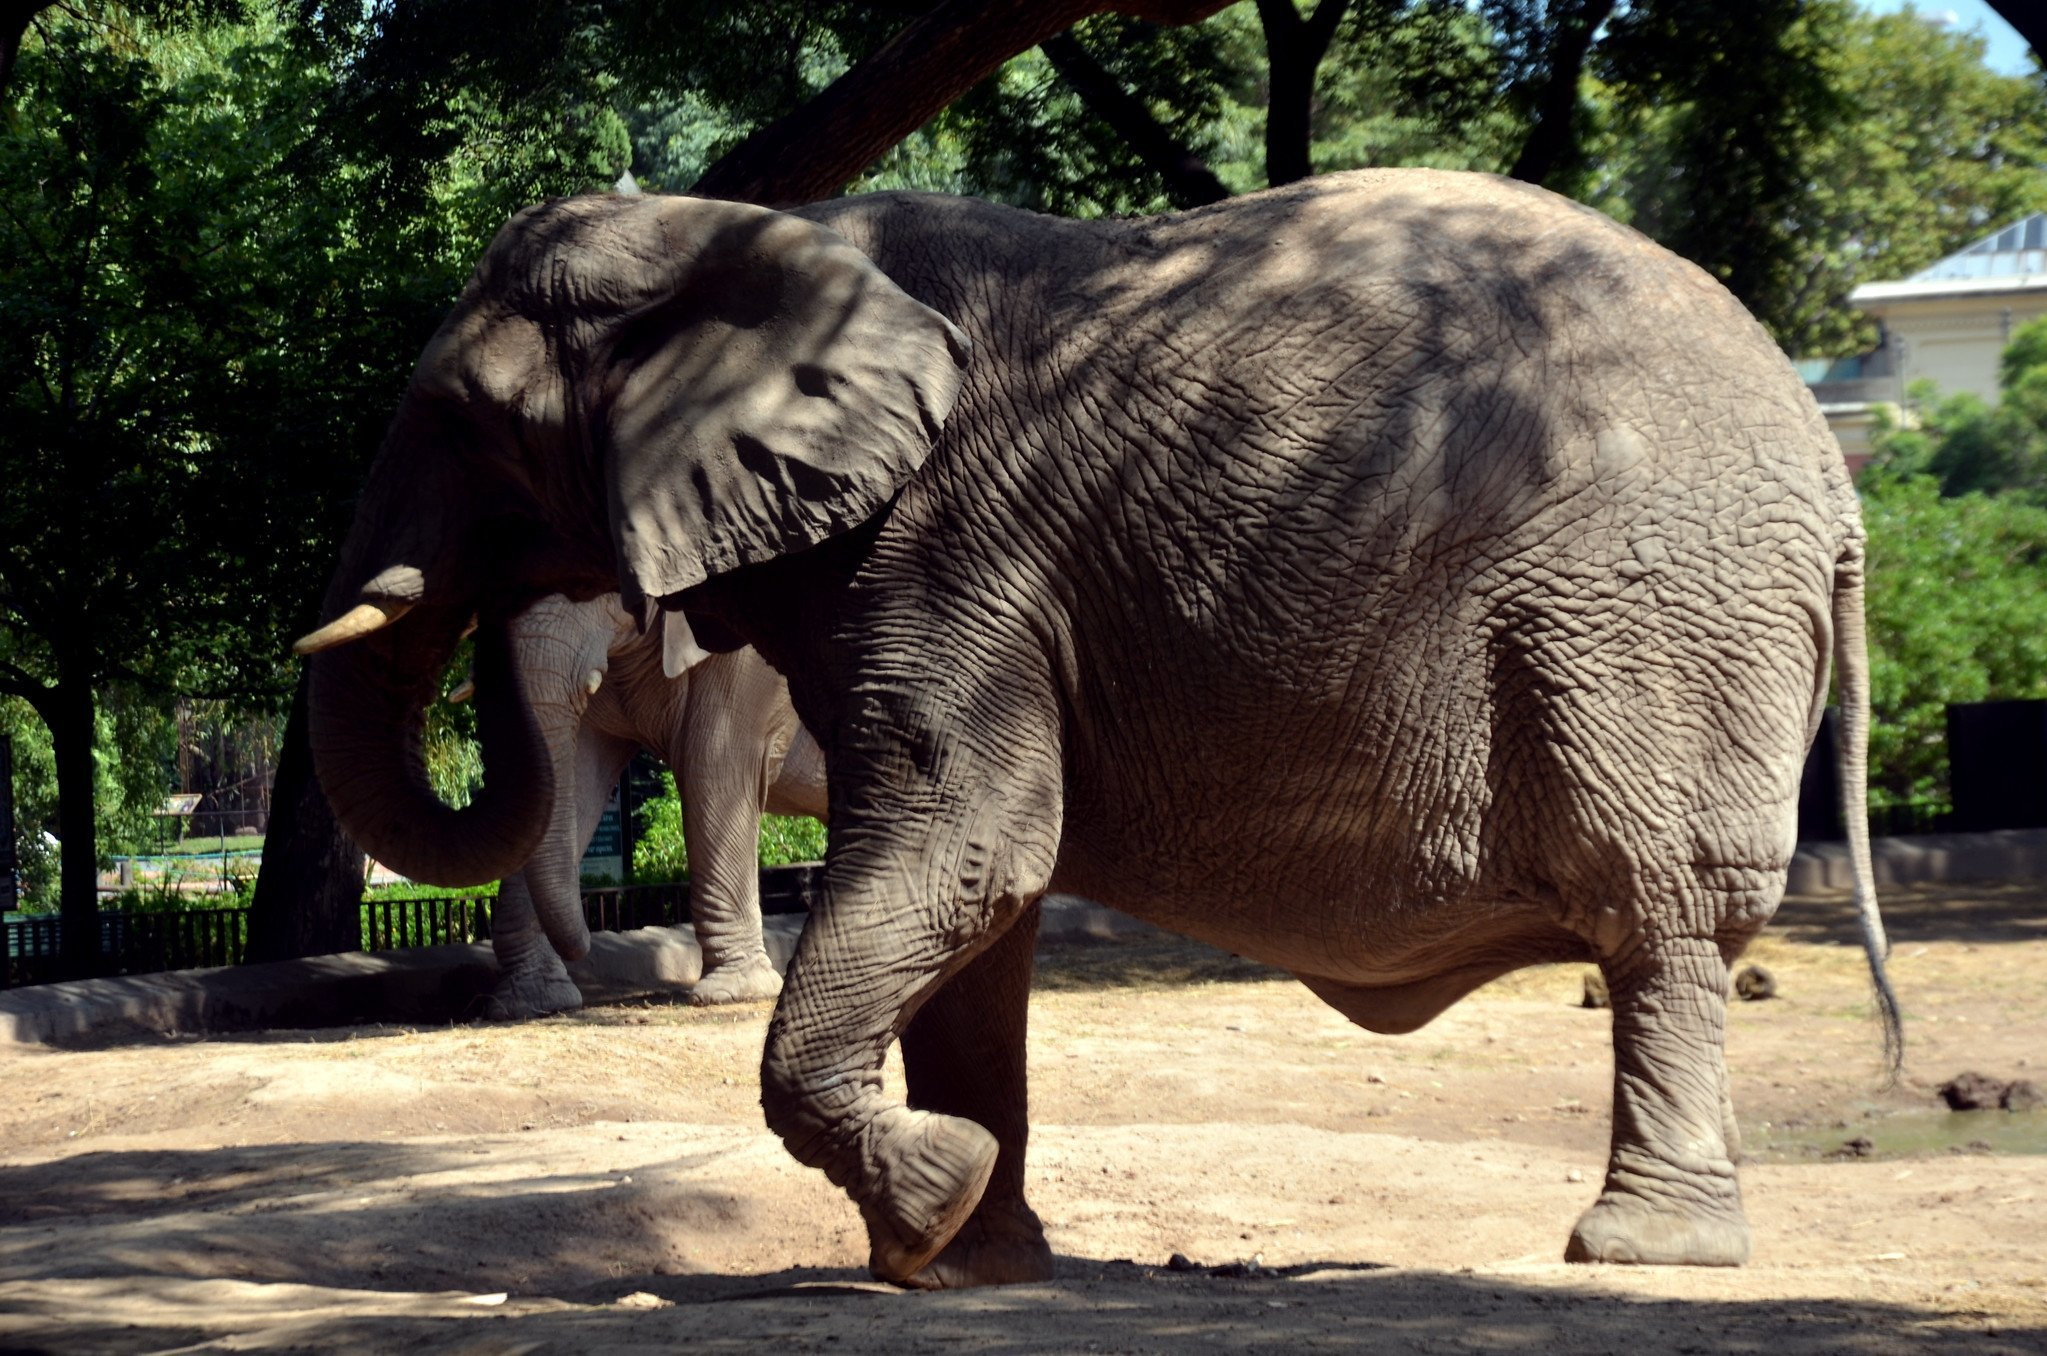 Elefant | Quelle: Flickr